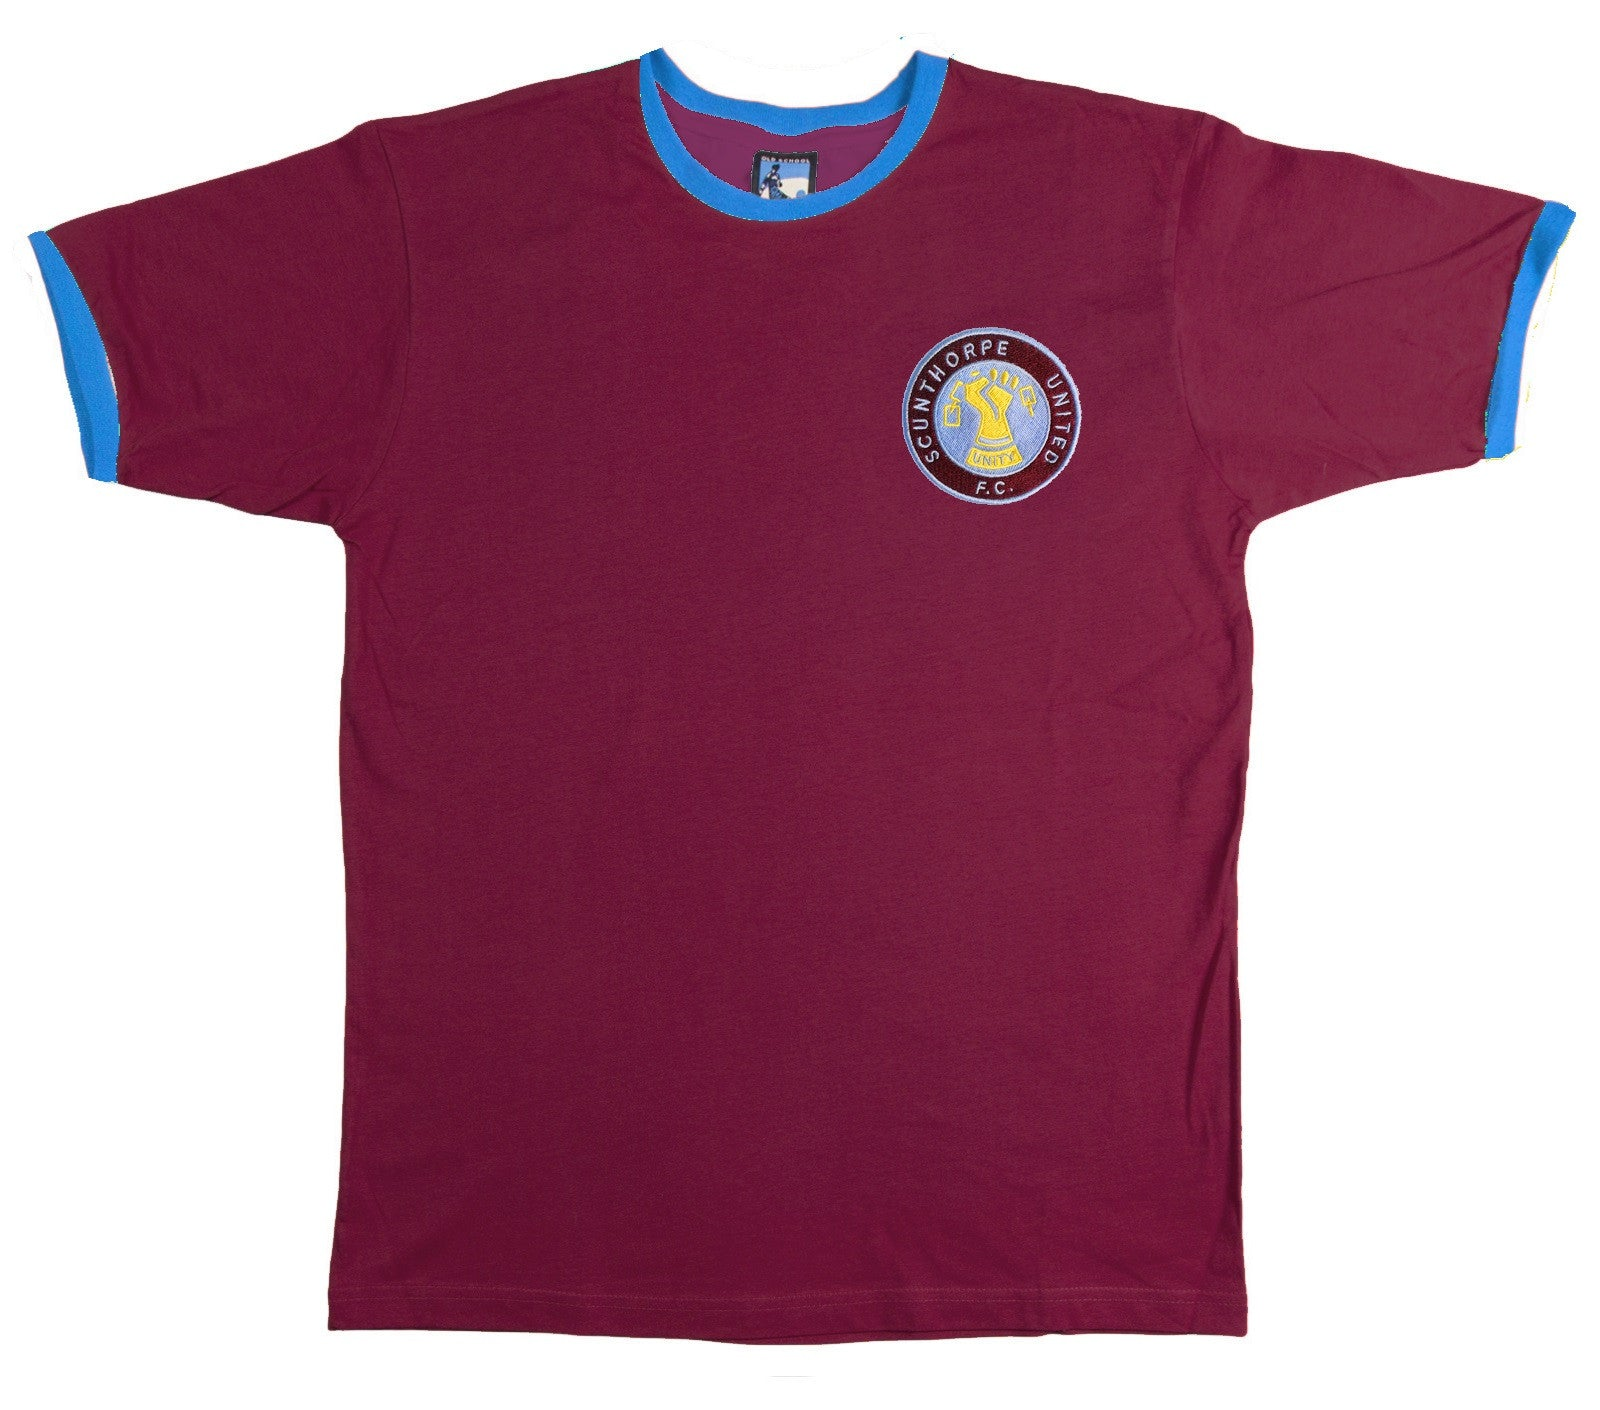 Scunthorpe United Retro Football T Shirt 1980s - T-shirt